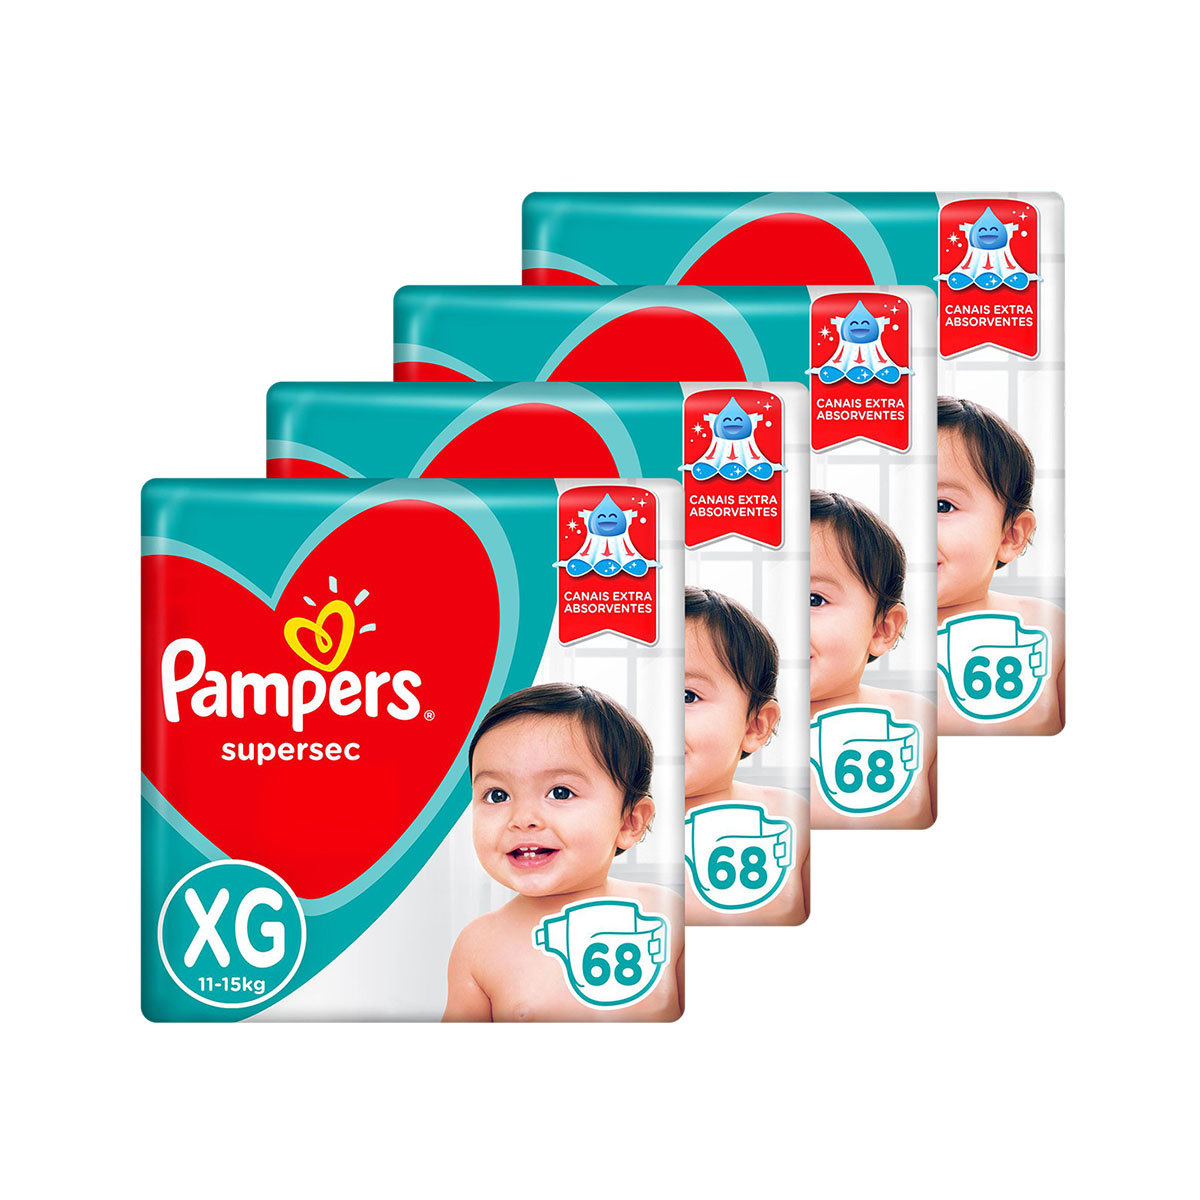 Kit De Fraldas Pampers Xg Supersec Jumbo 272 Unidades